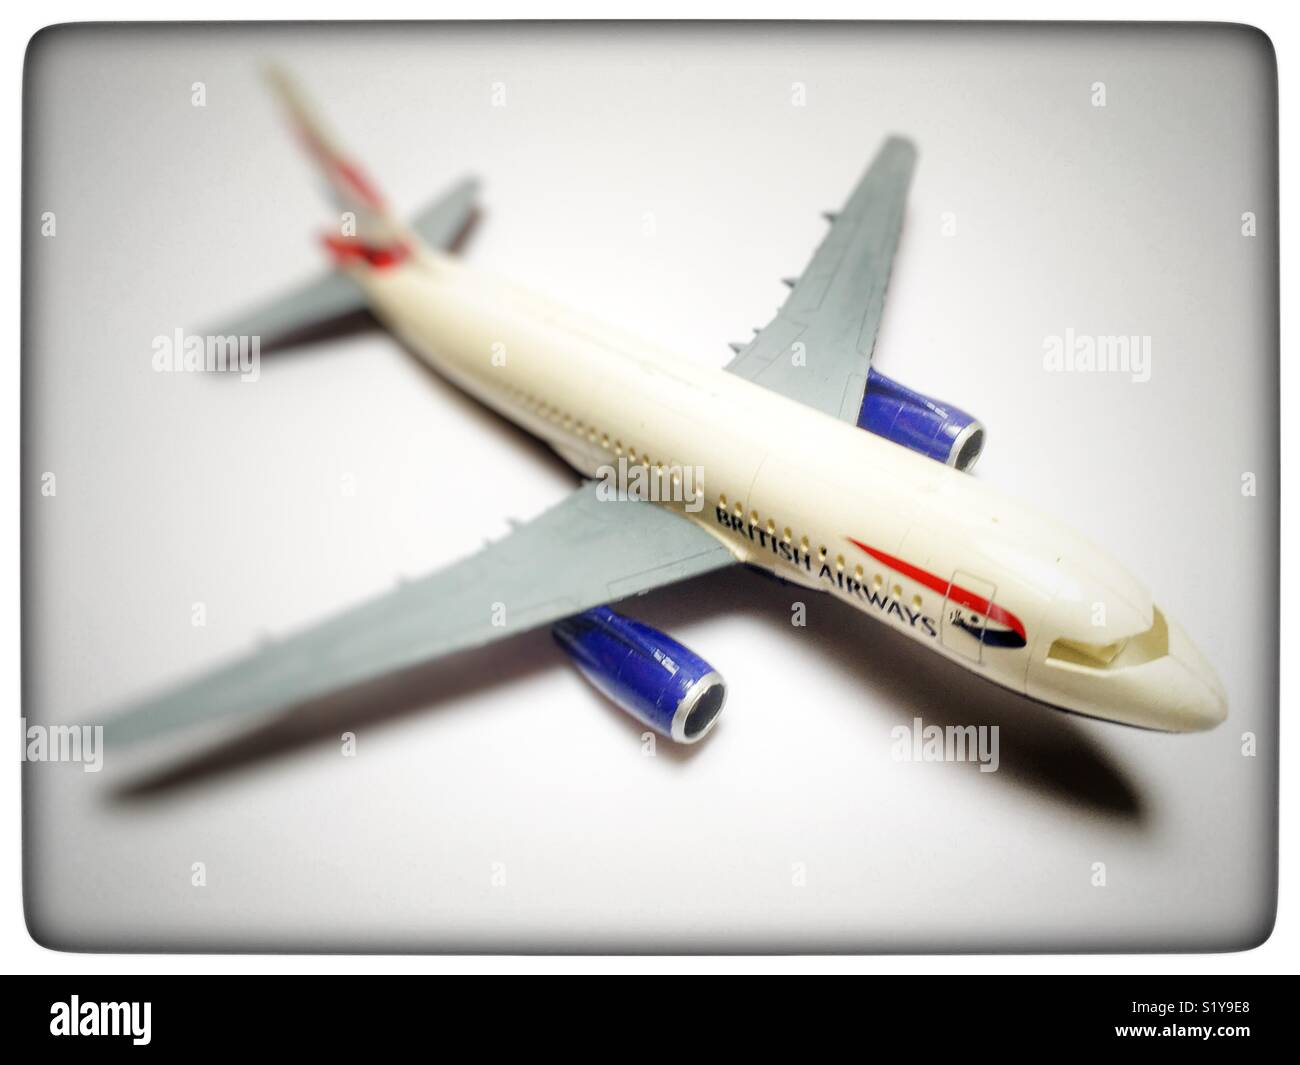 Revell 1:144 scale Airbus A319 British Airways model aircraft - Stock Image